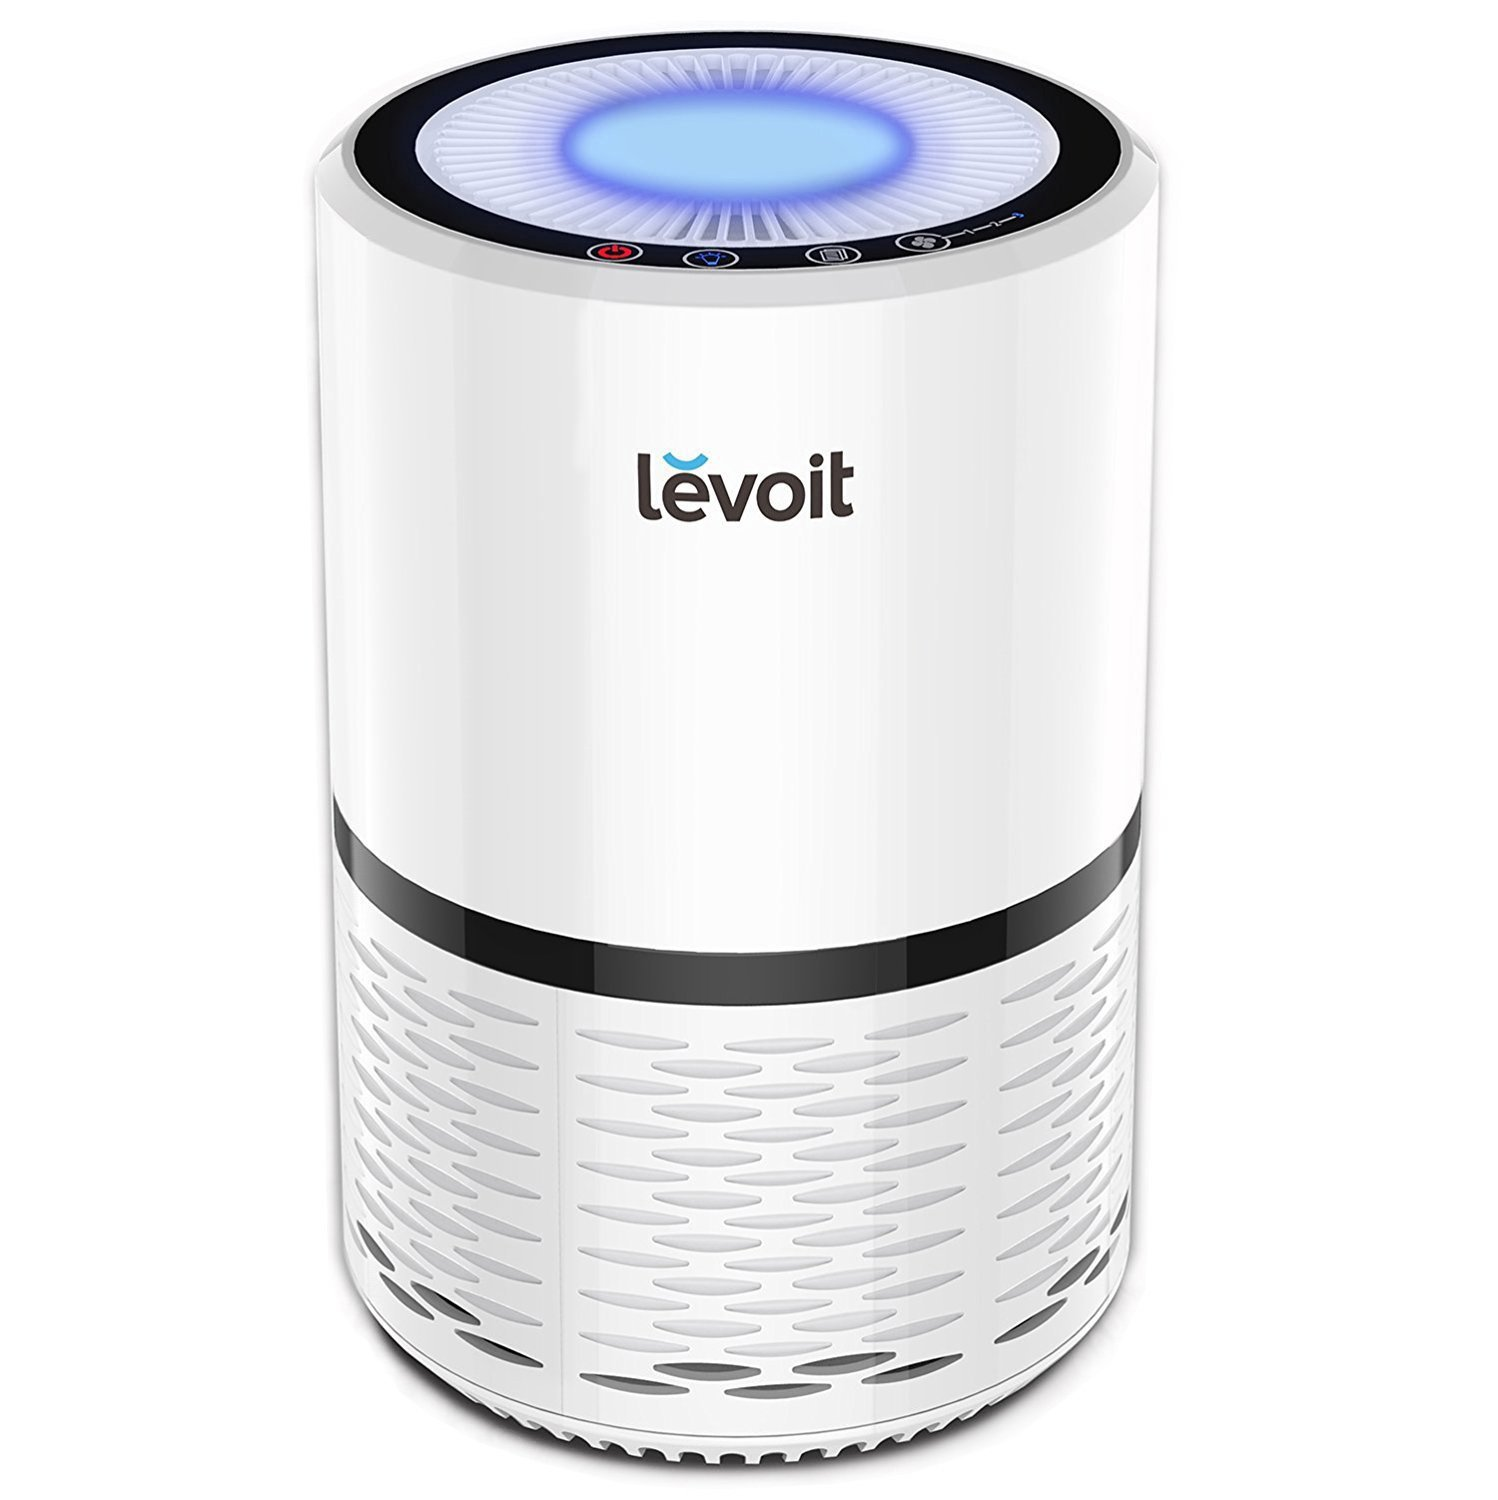 LEVOIT LV-H132 Air Purifier with True Hepa Filter, Odor Allergies Eliminator for Smokers, Smoke, Dust, Mold, Home and Pets, Air Cleaner with Night Light, US-120V, White by LEVOIT